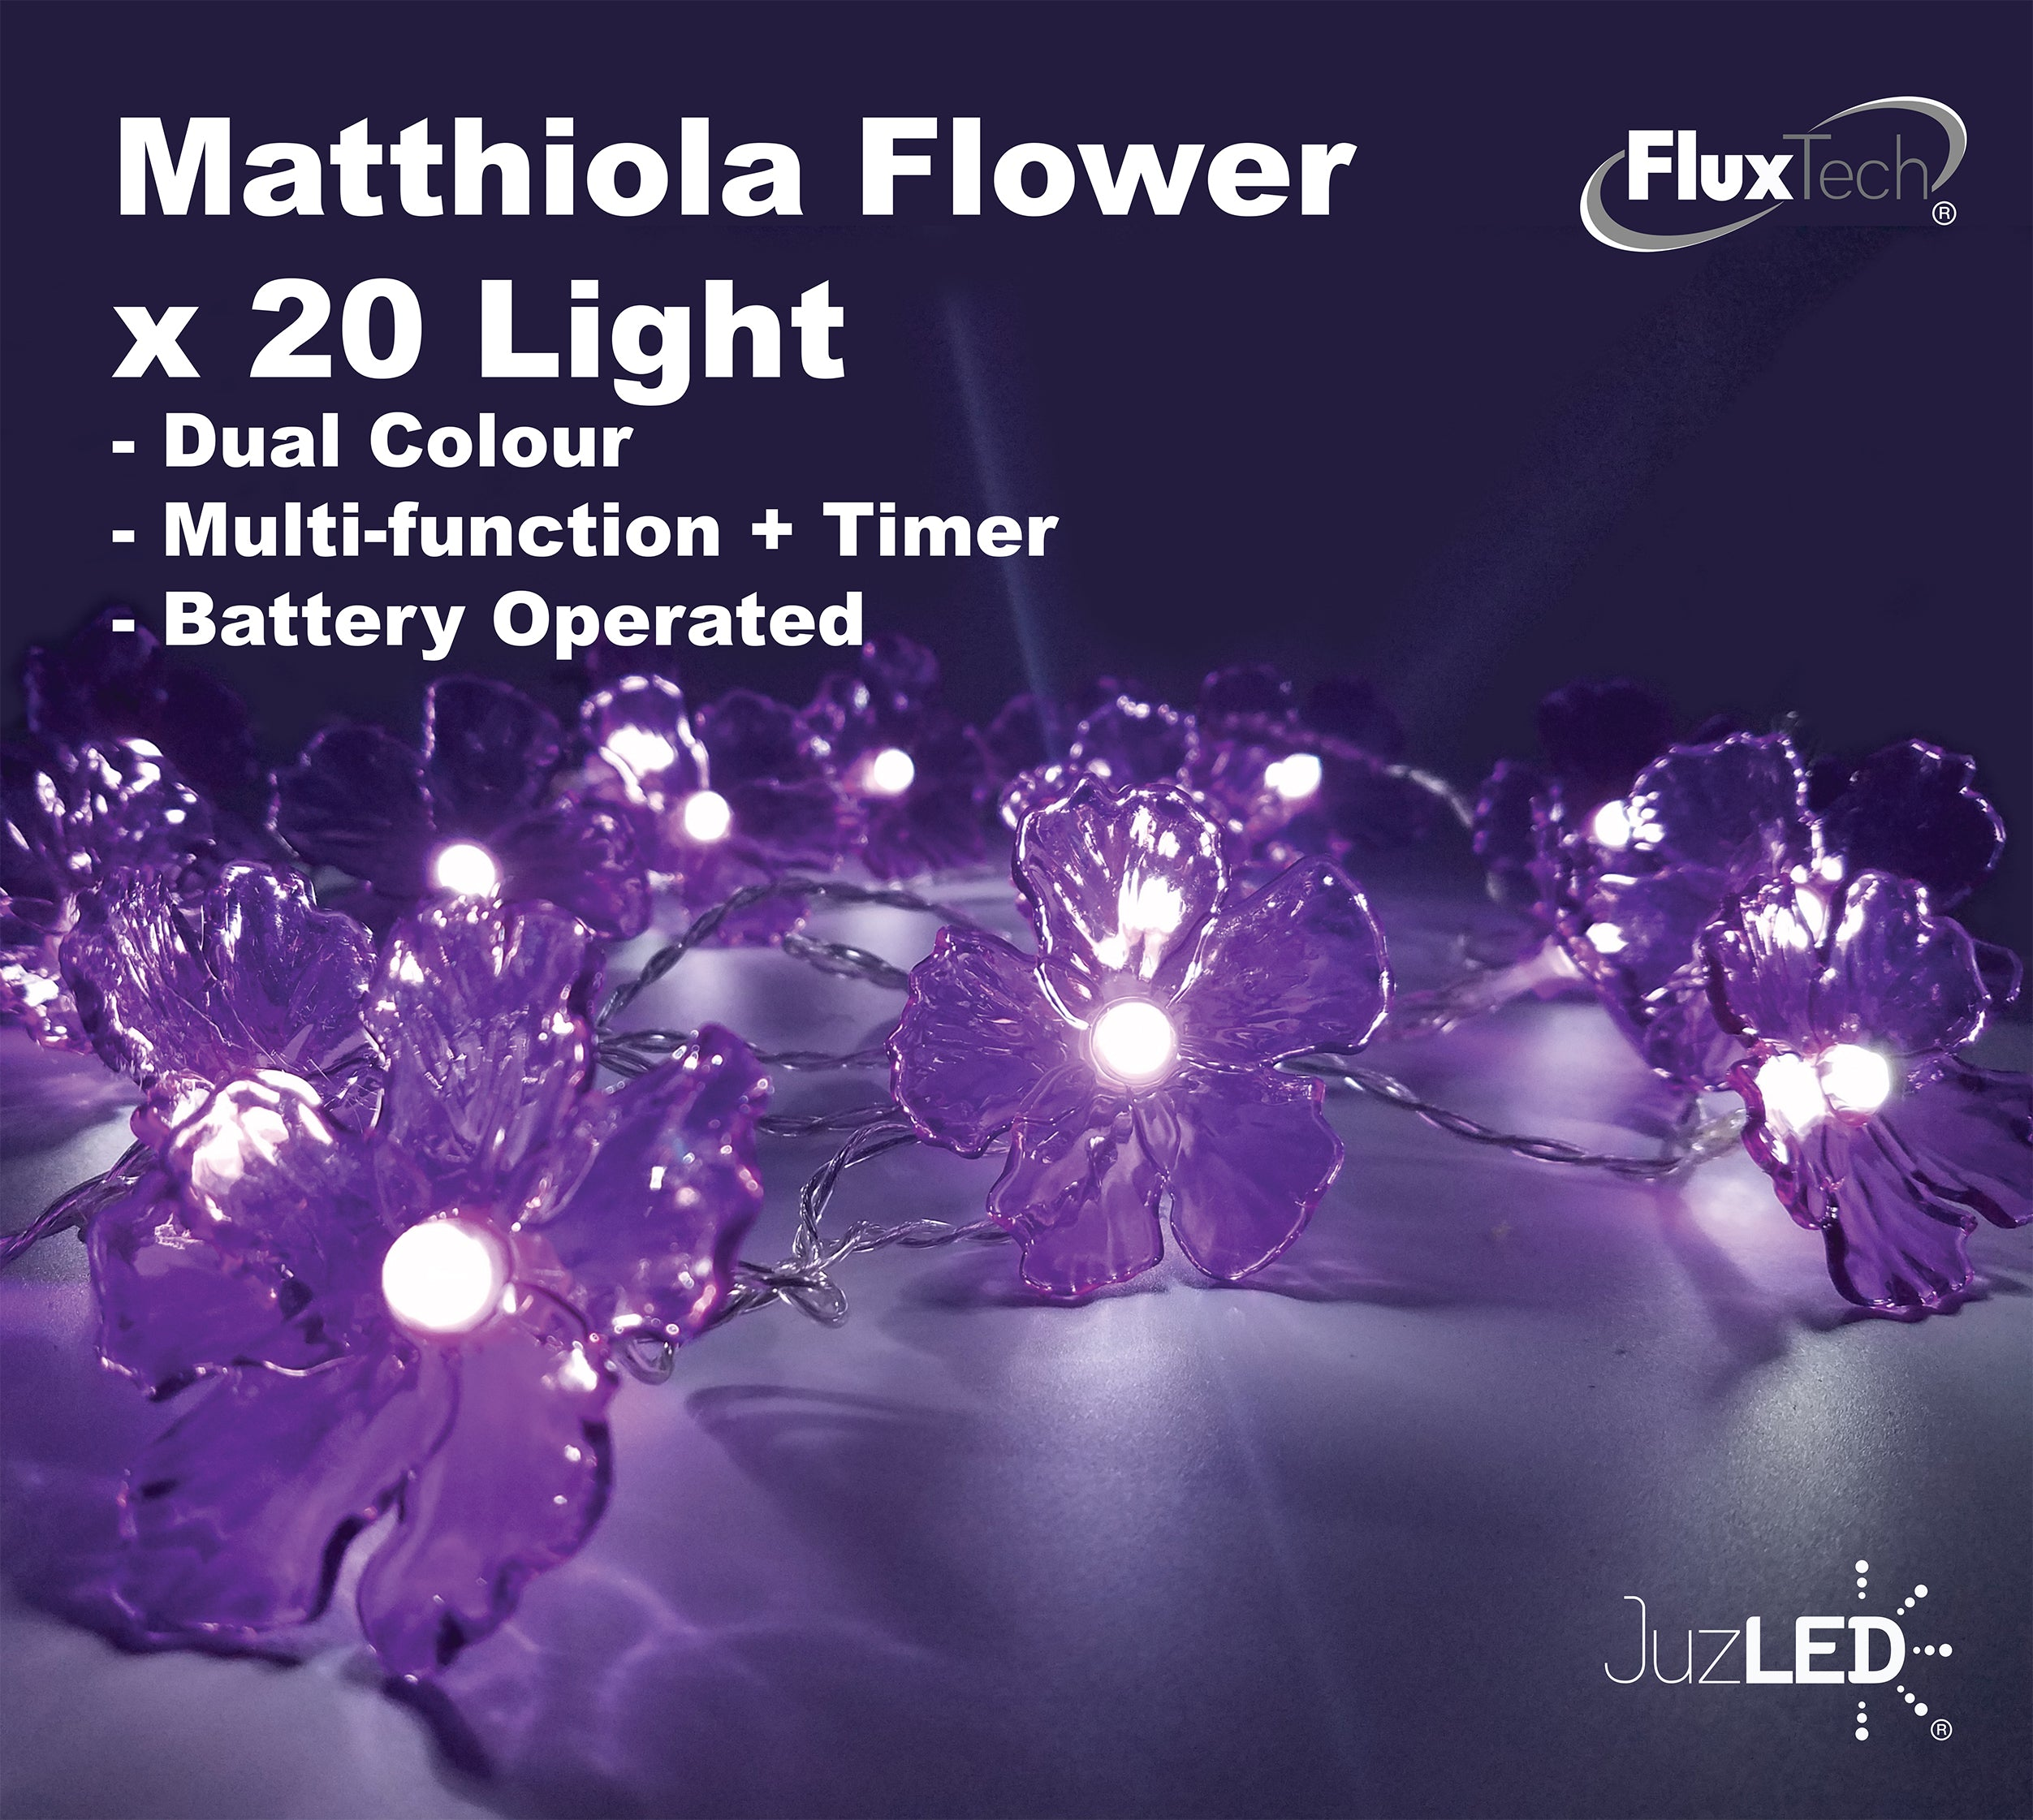 FluxTech - Matthiola Flower 20 x Dual Colour LED String Lights by JustLED – Multi-function Effect – Timer function - Battery Operated